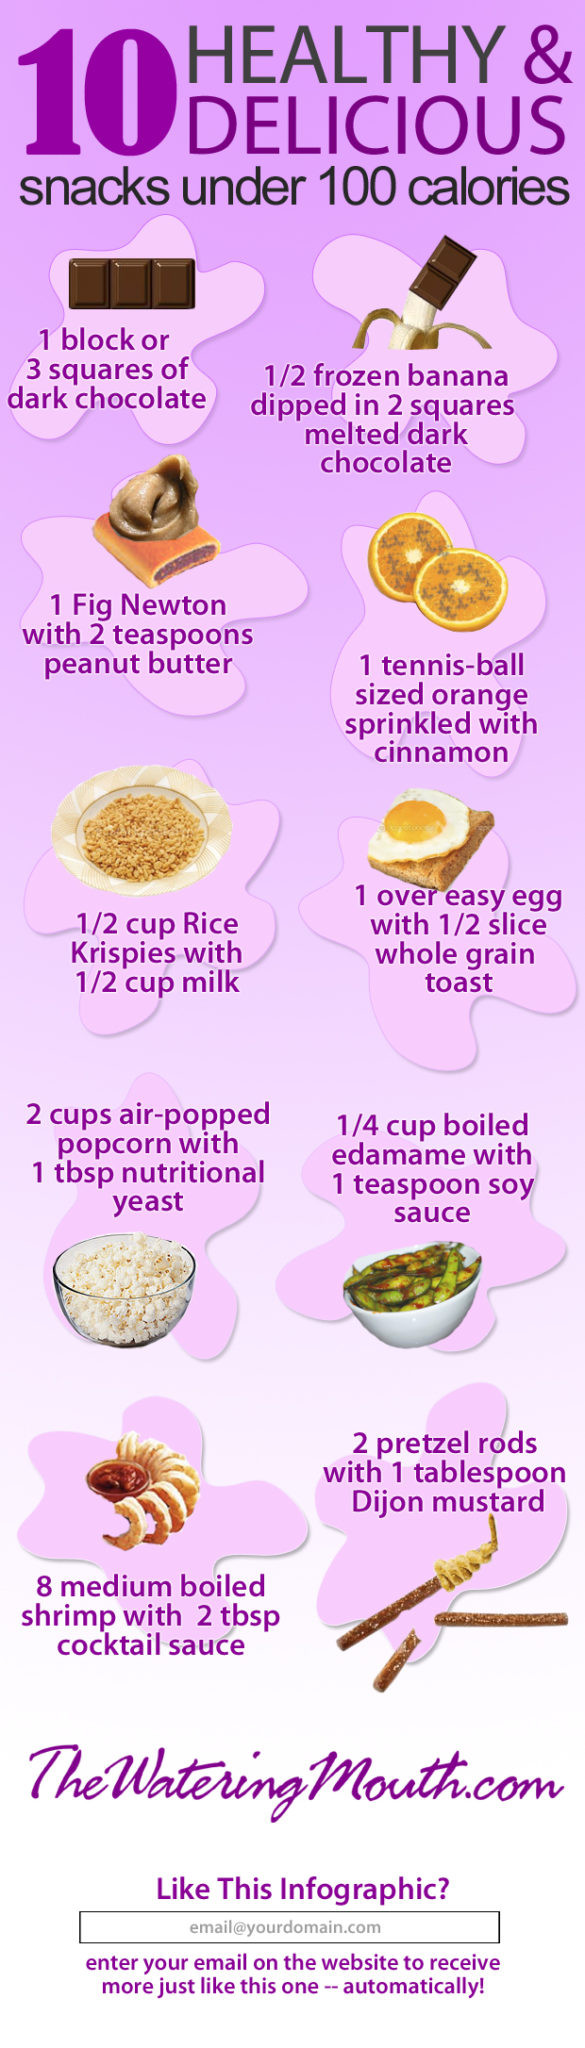 100 Calorie Snacks List  10 Healthy Snacks Under 100 Calories [ infographic] The